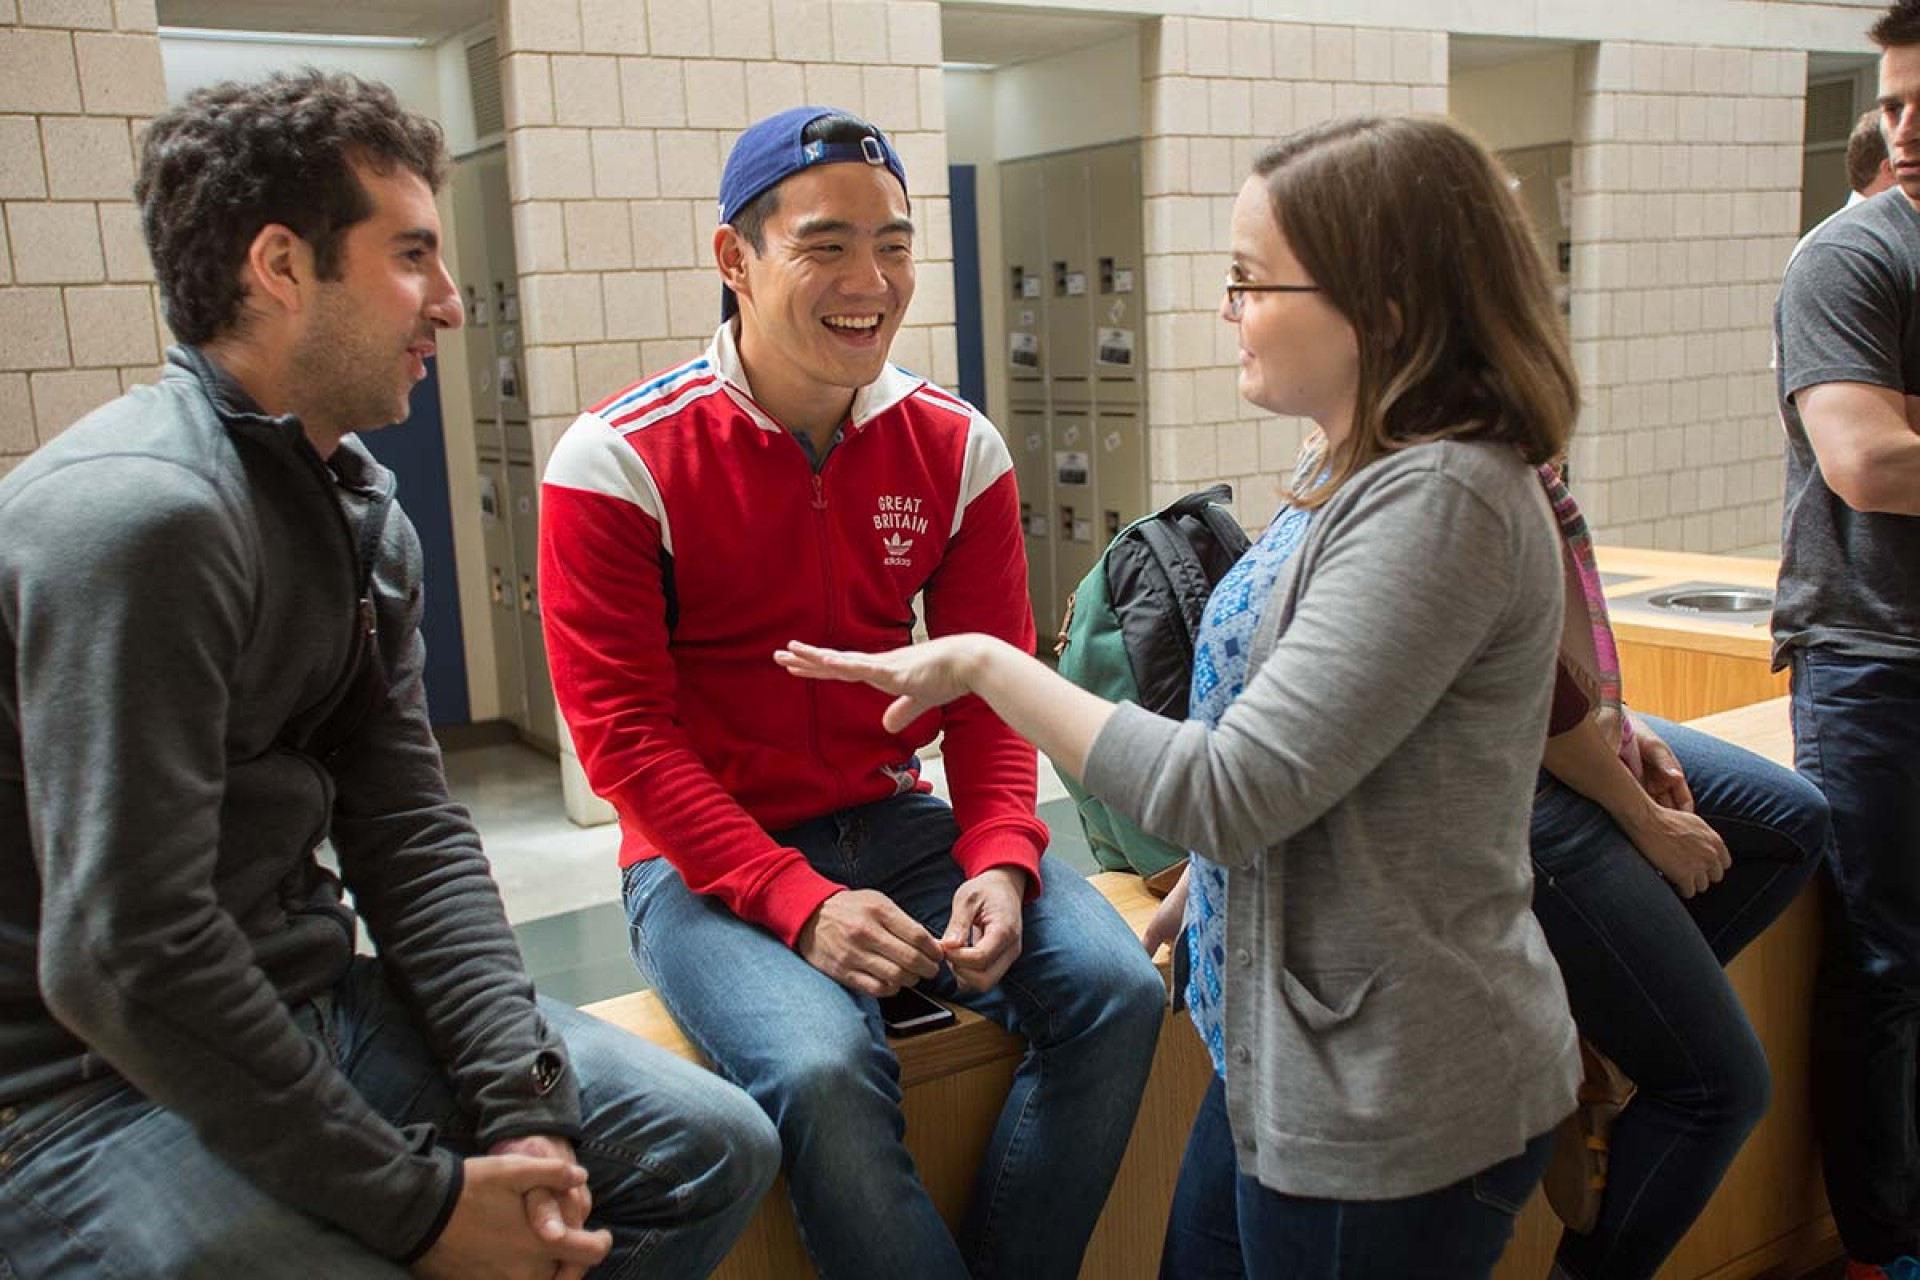 011 Duke Mba Essays Students Chatting In Mallway 1 1200x800px Essay Archaicawful Analysis Examples 1920